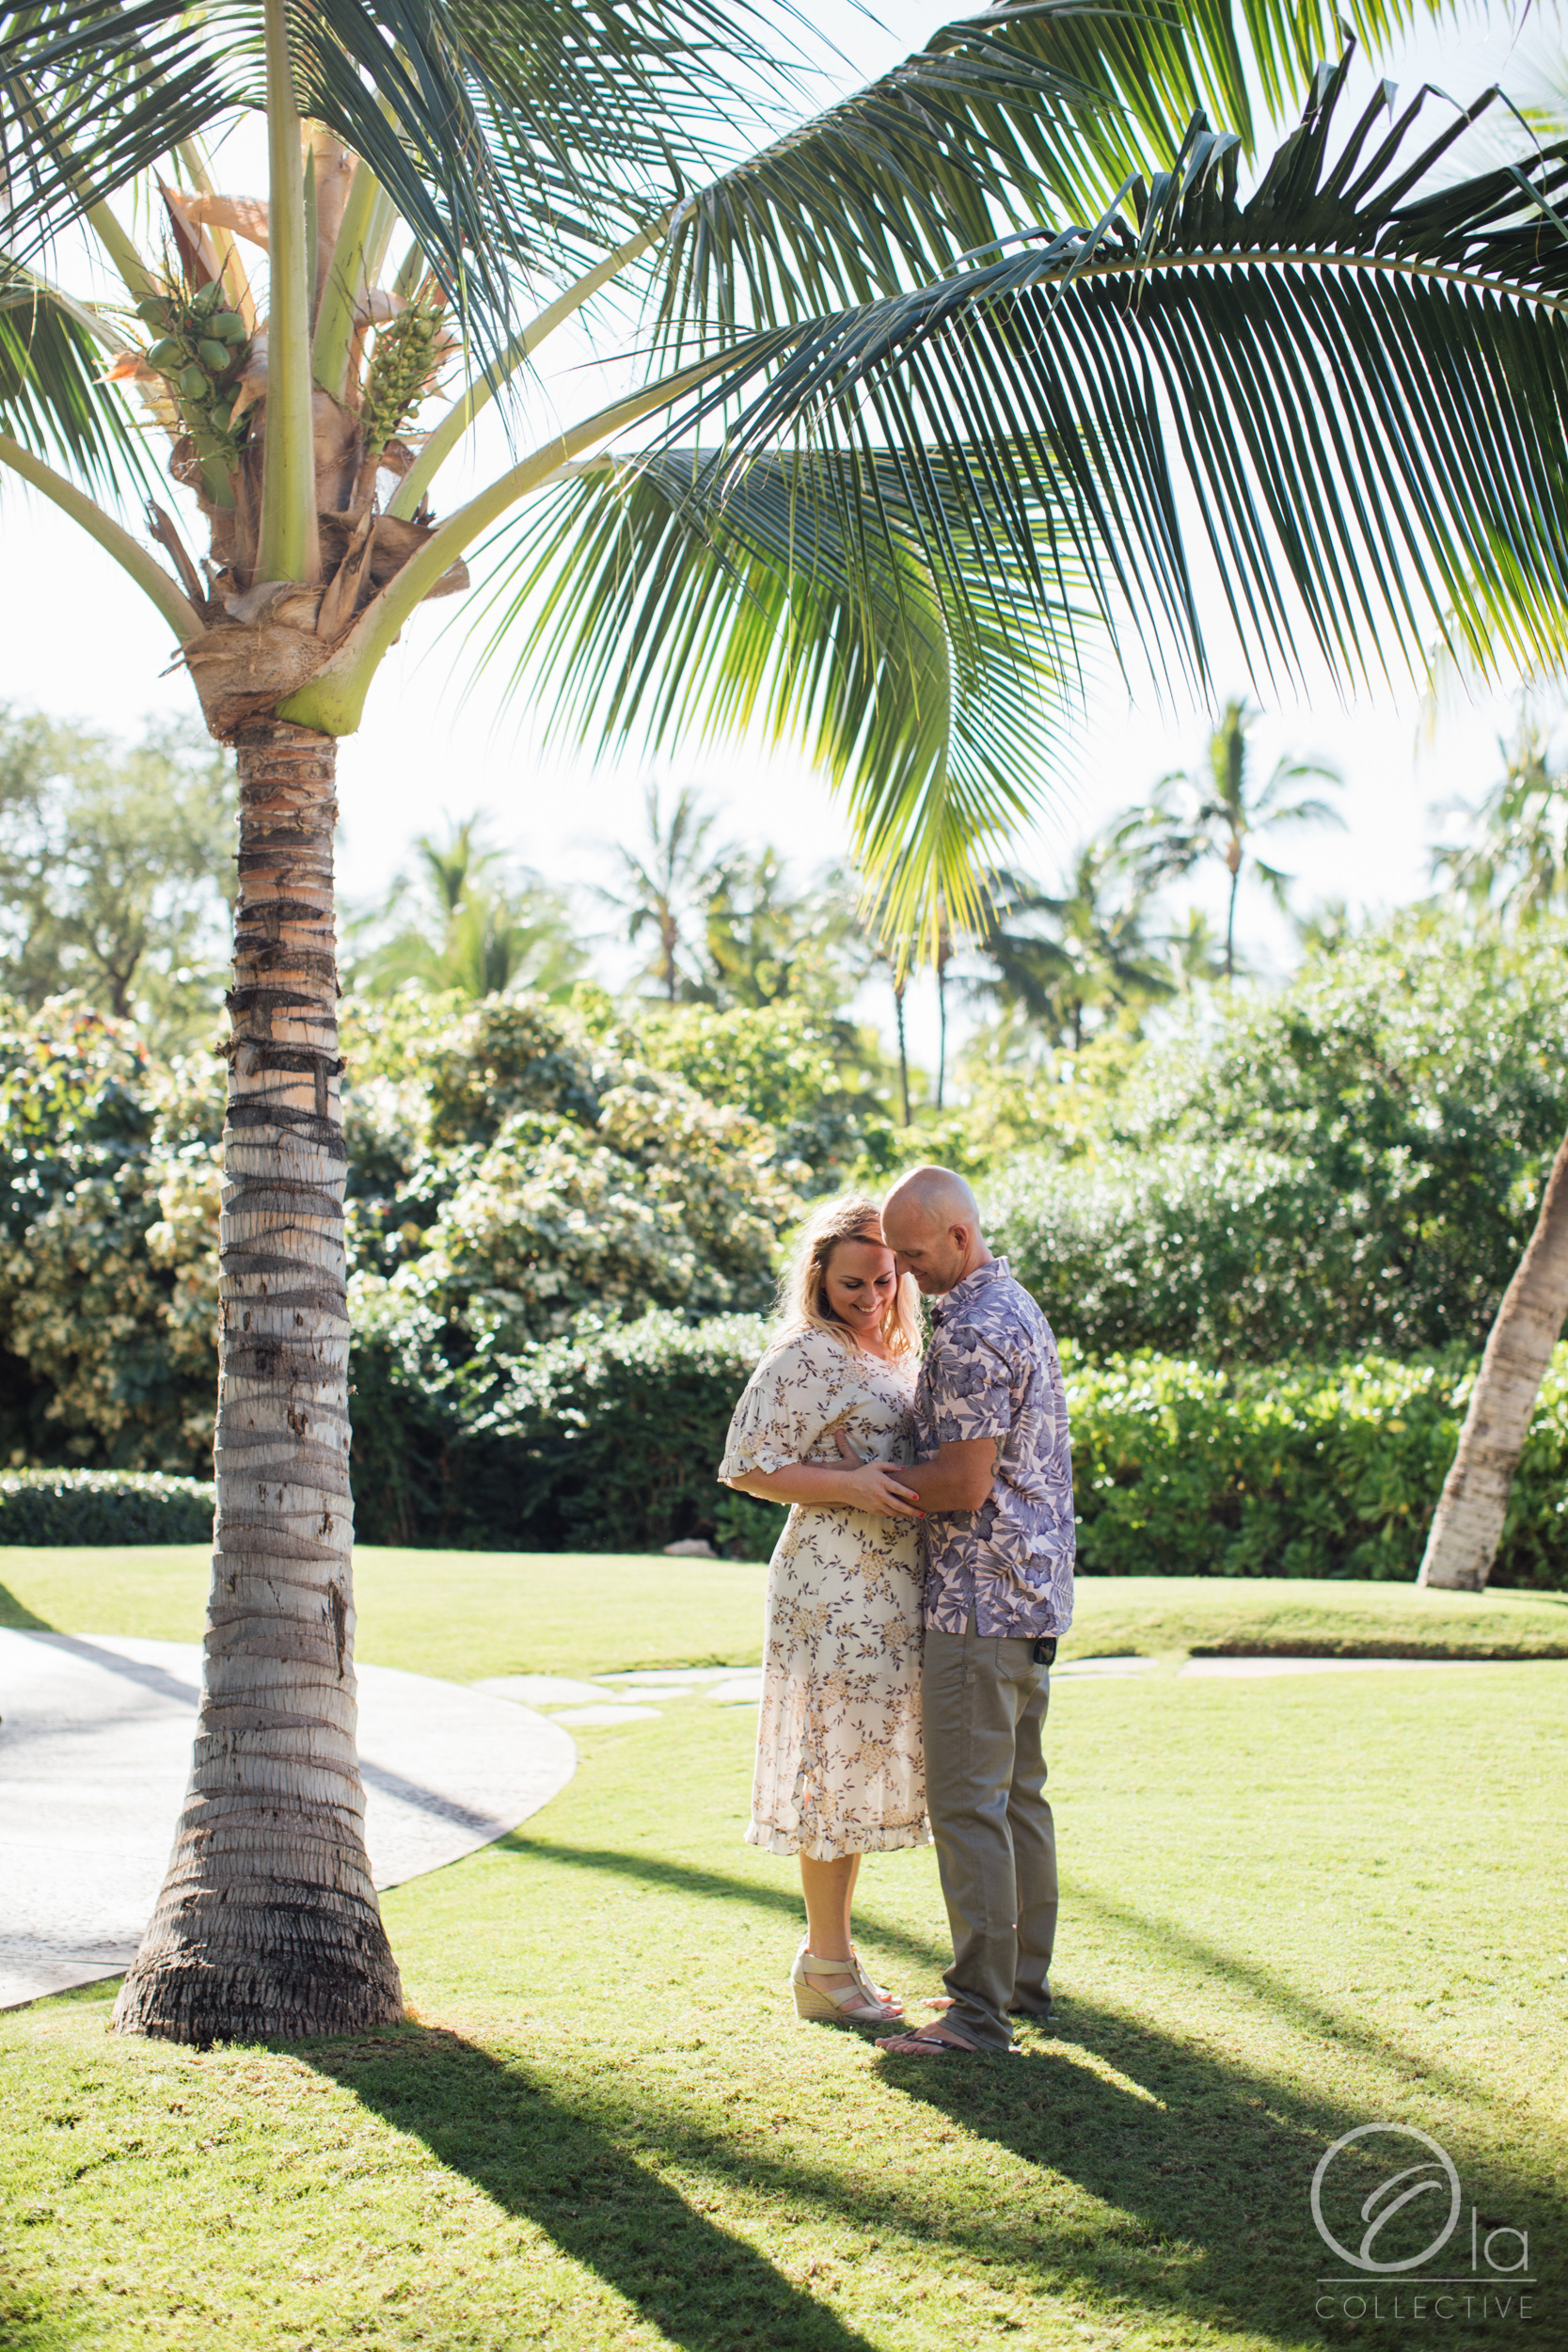 Ko-Olina-Engagement-Photographer-Ola-Collective-10.jpg